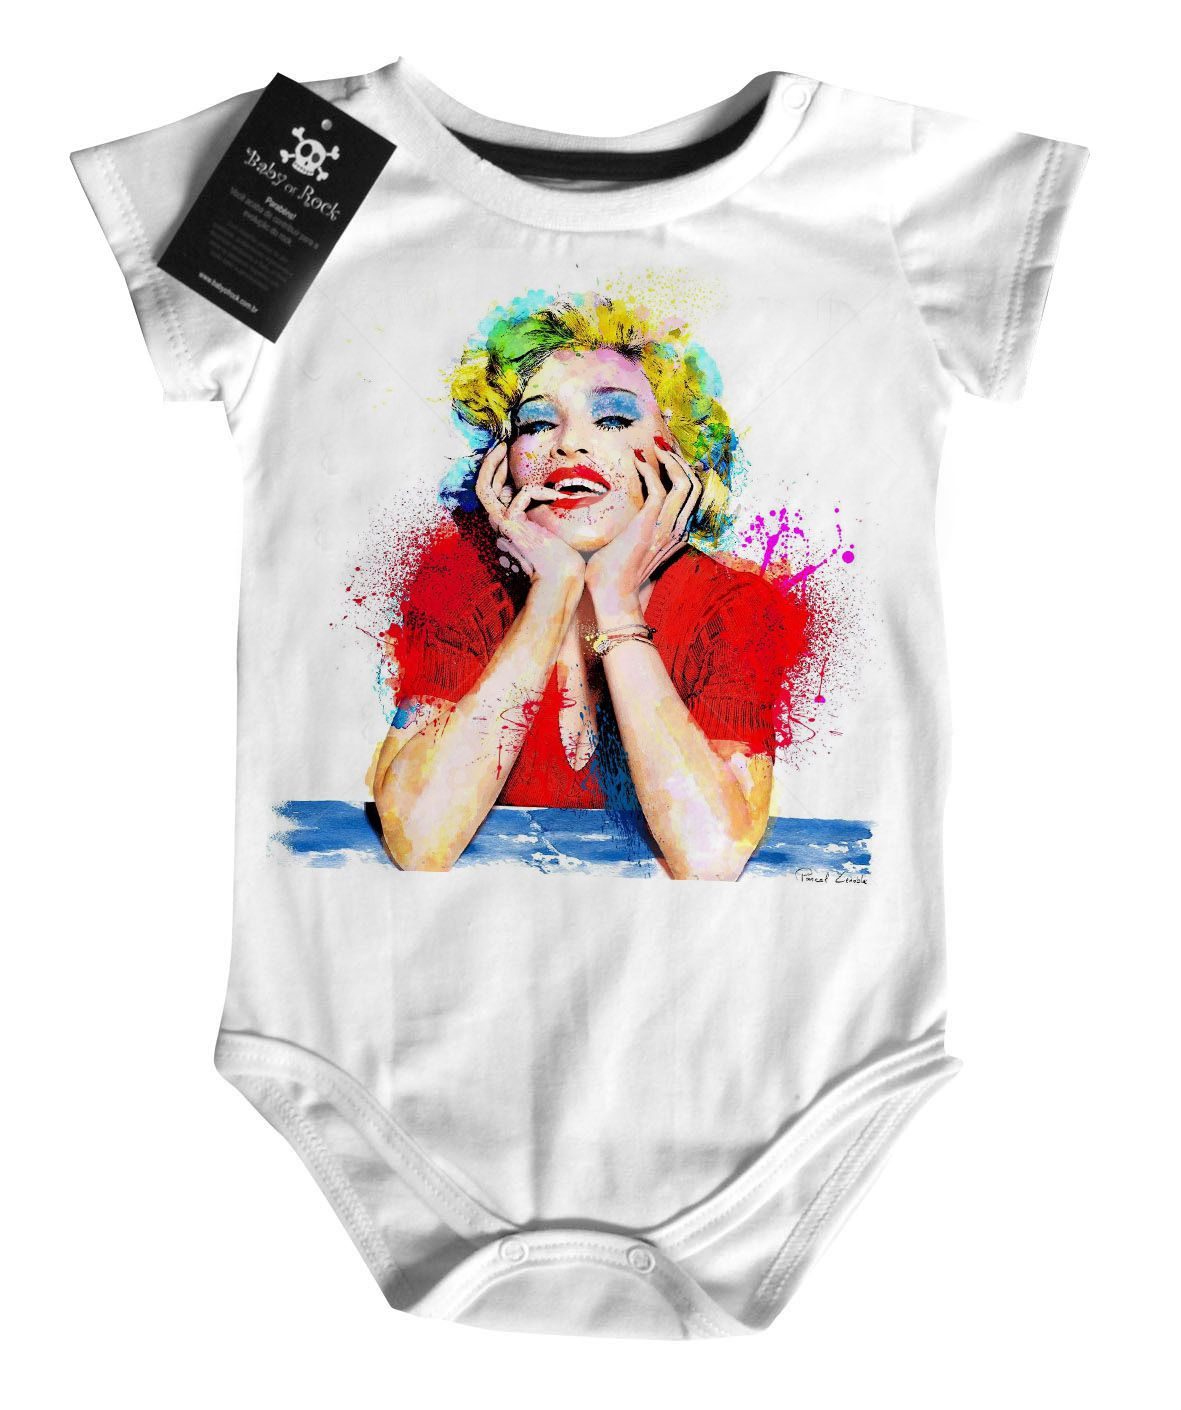 Body Bebe de  Rock -  Madona  - White  - Baby Monster S/A